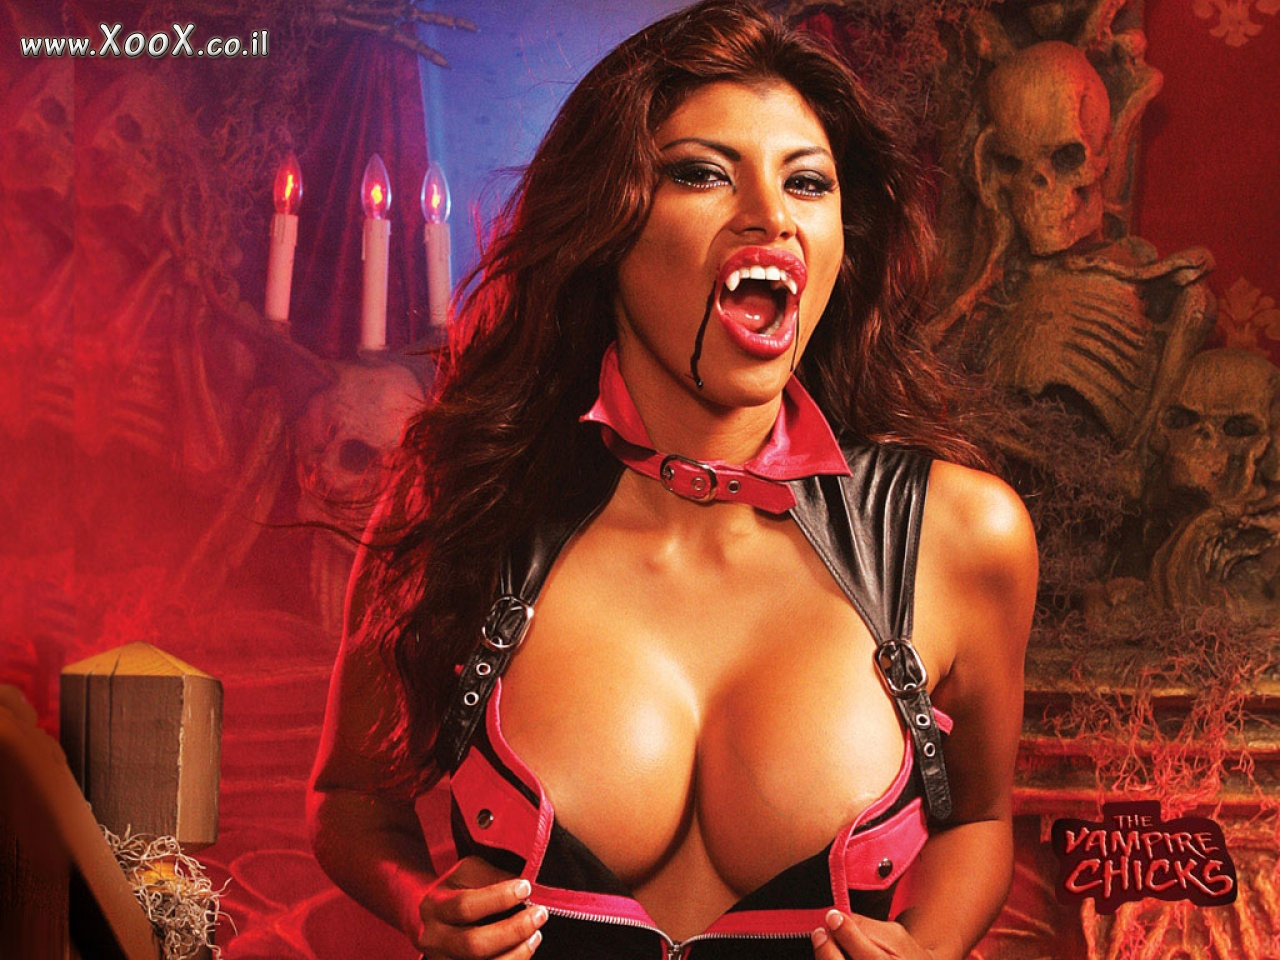 Download video hot vampire girls xxx sexy galleries